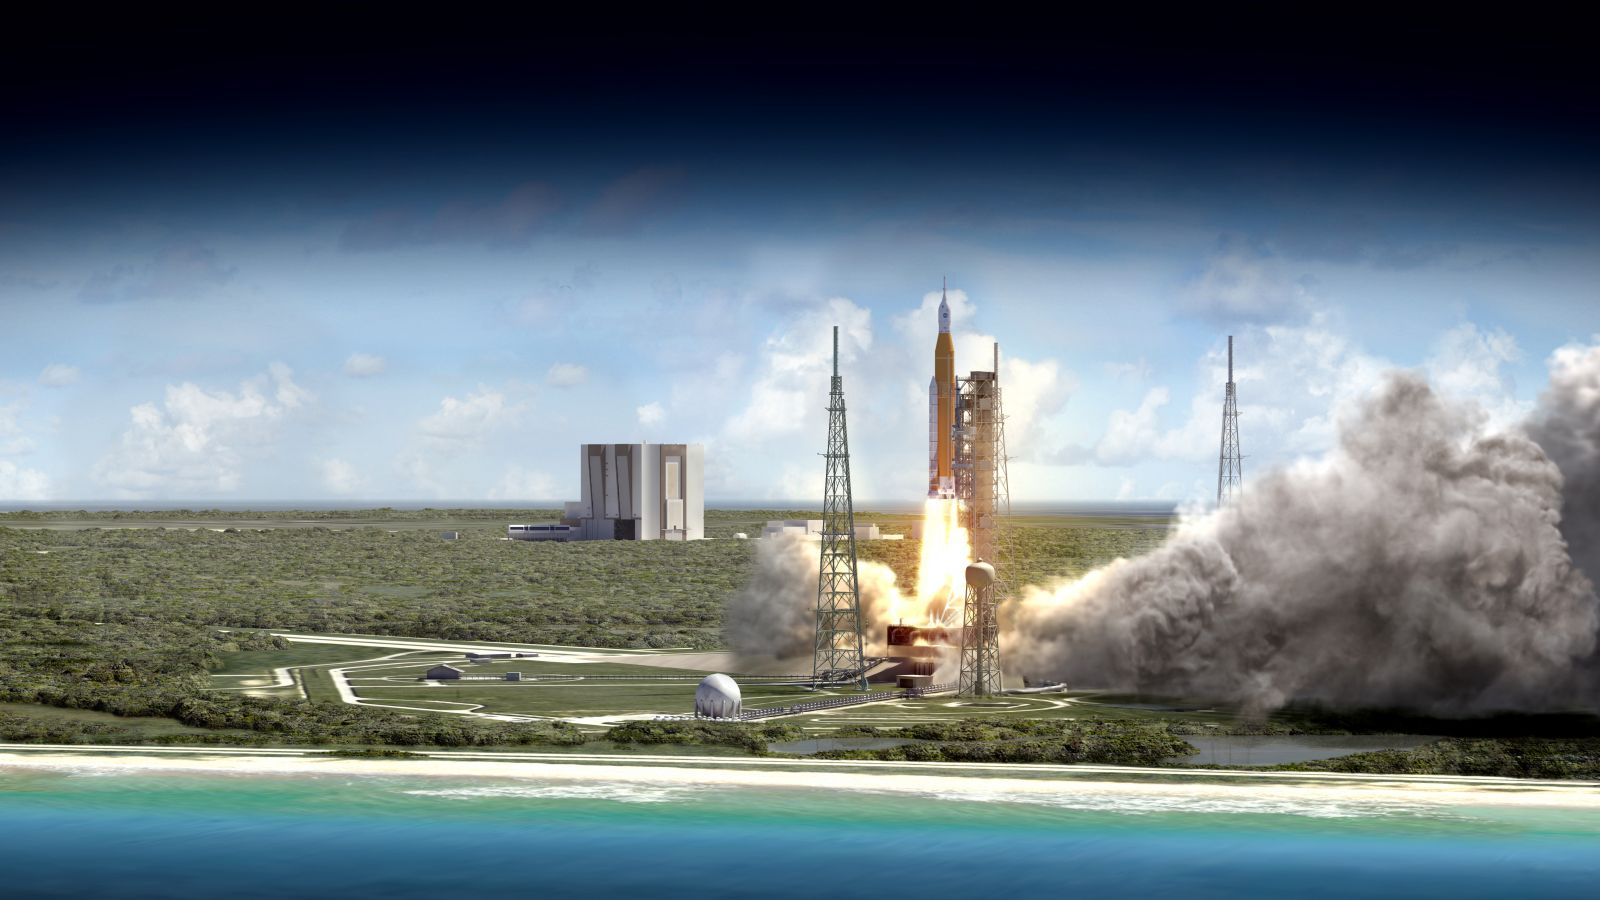 NASA's Space Launch System Exploration Mission 1